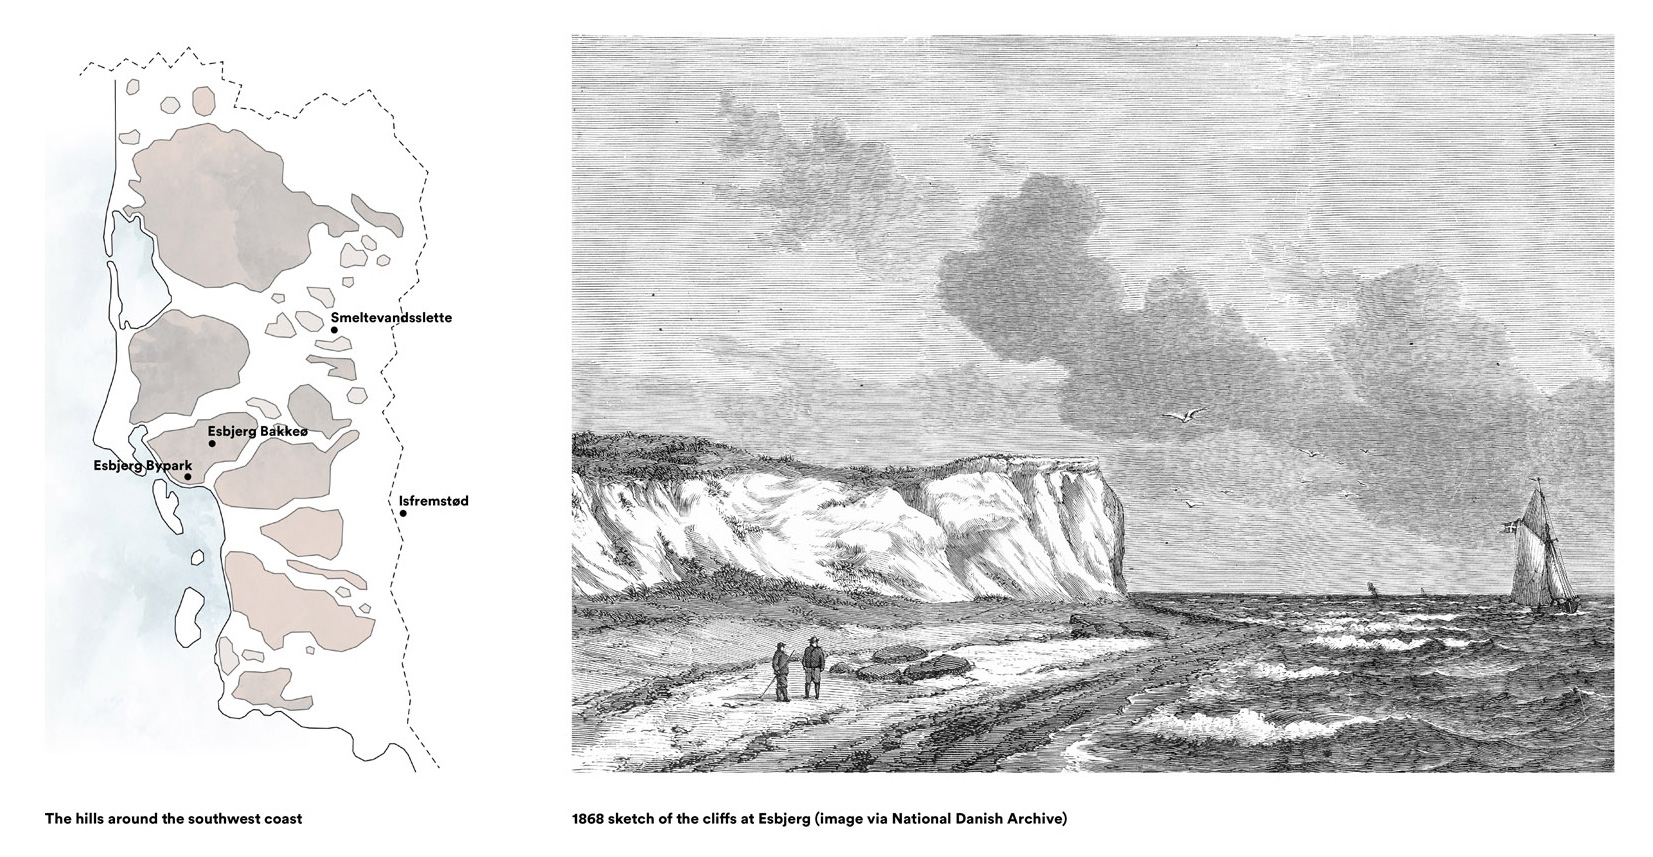 The hills around the southwest coast (left), and 1868 sketch of the cliffs at Esbjerg| Henning Larsen| STIR